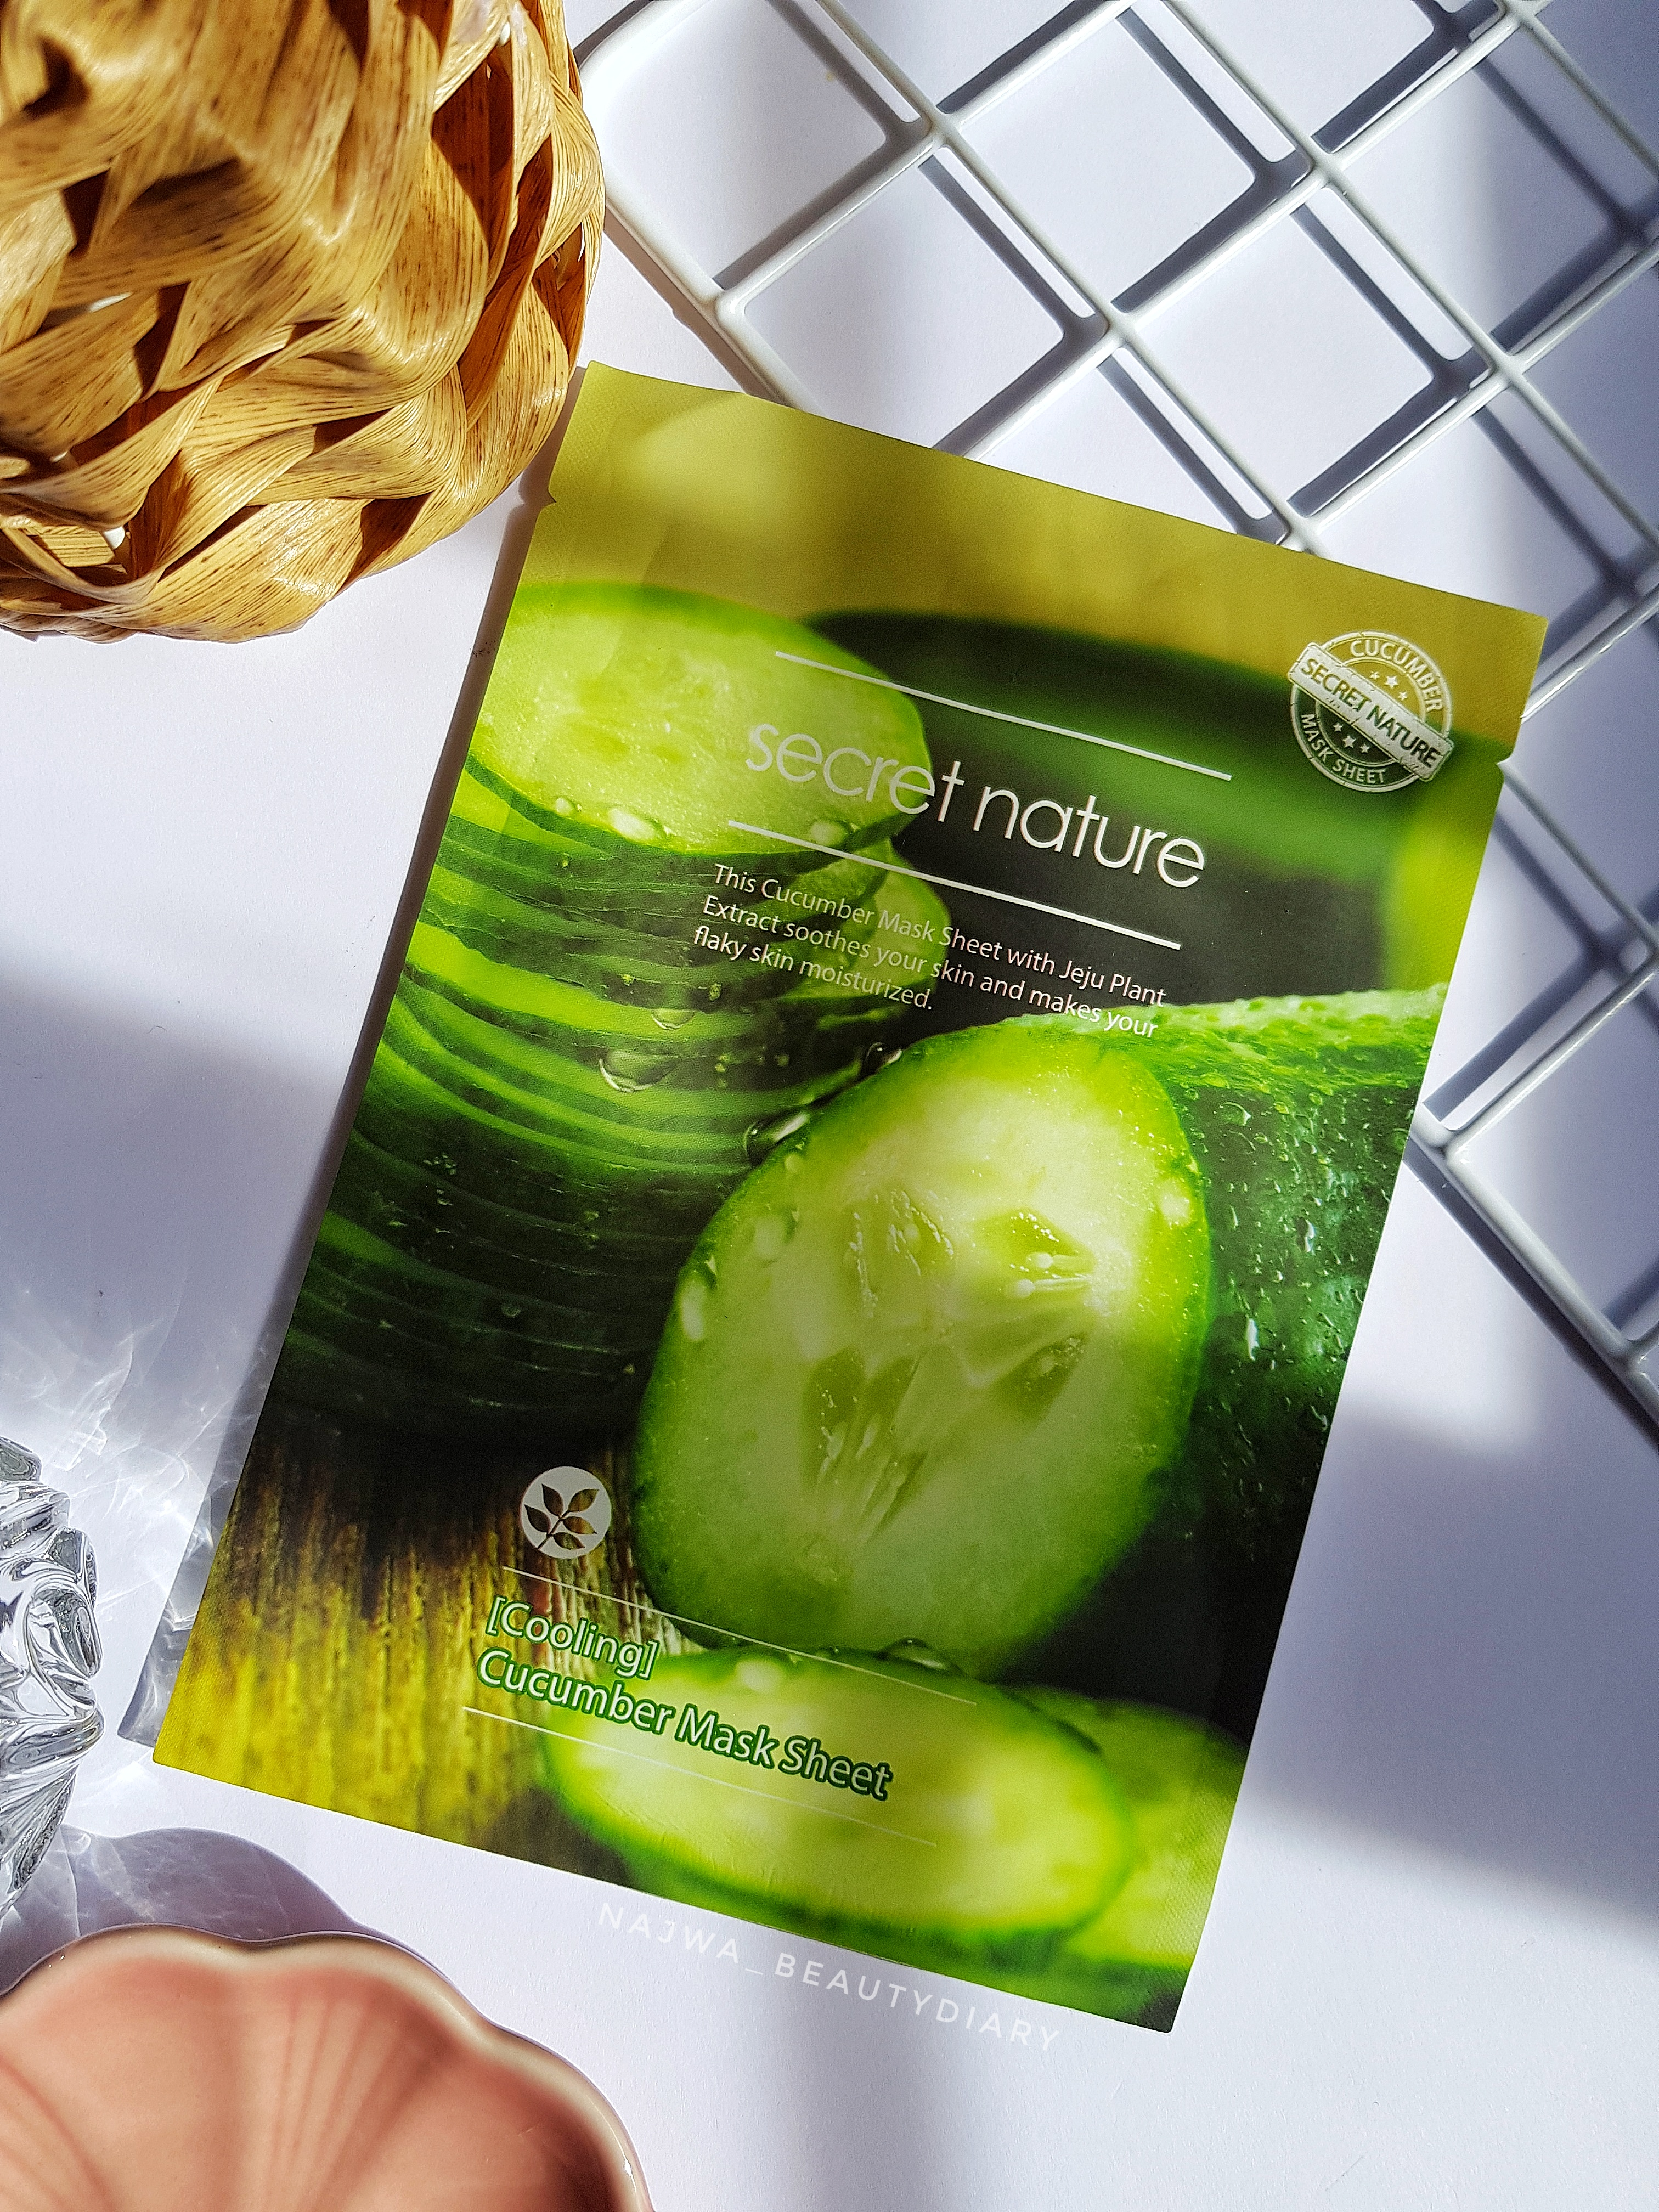 REVIEW | SECRET NATURE Cucumber Mask Sheet #Cooling